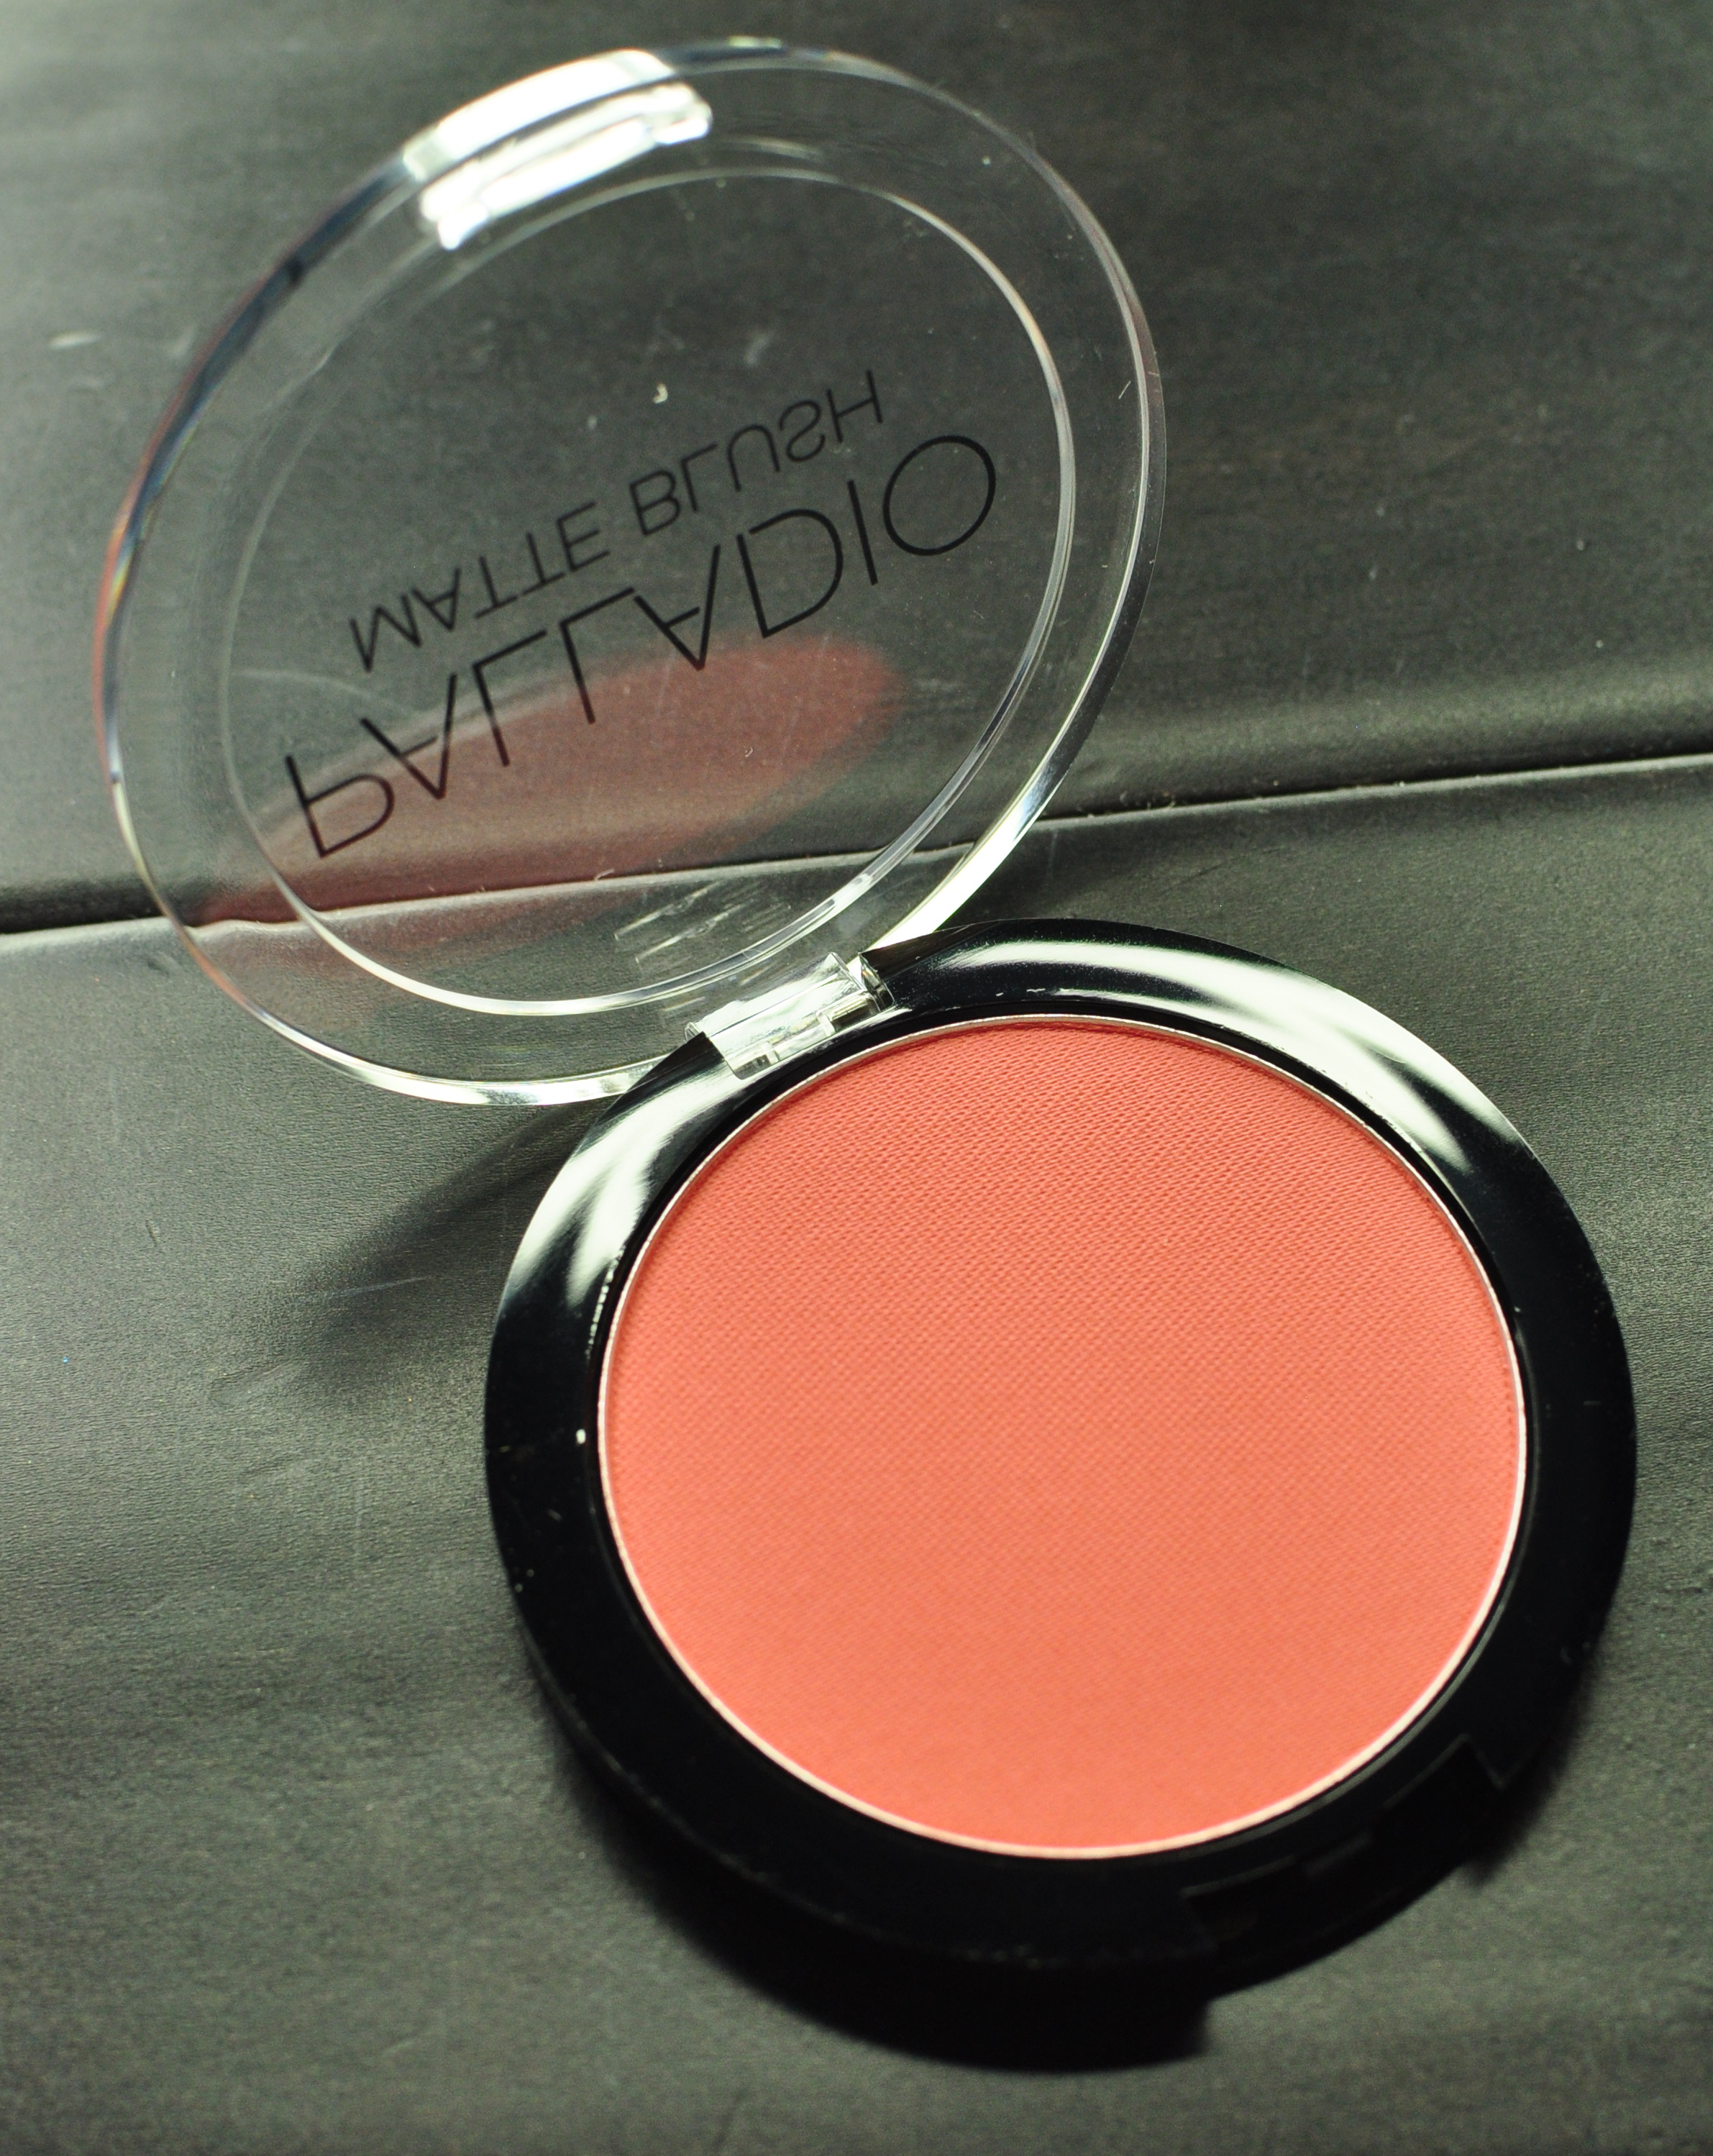 Palladio Beauty Makeup Review and Swatches Matte blush